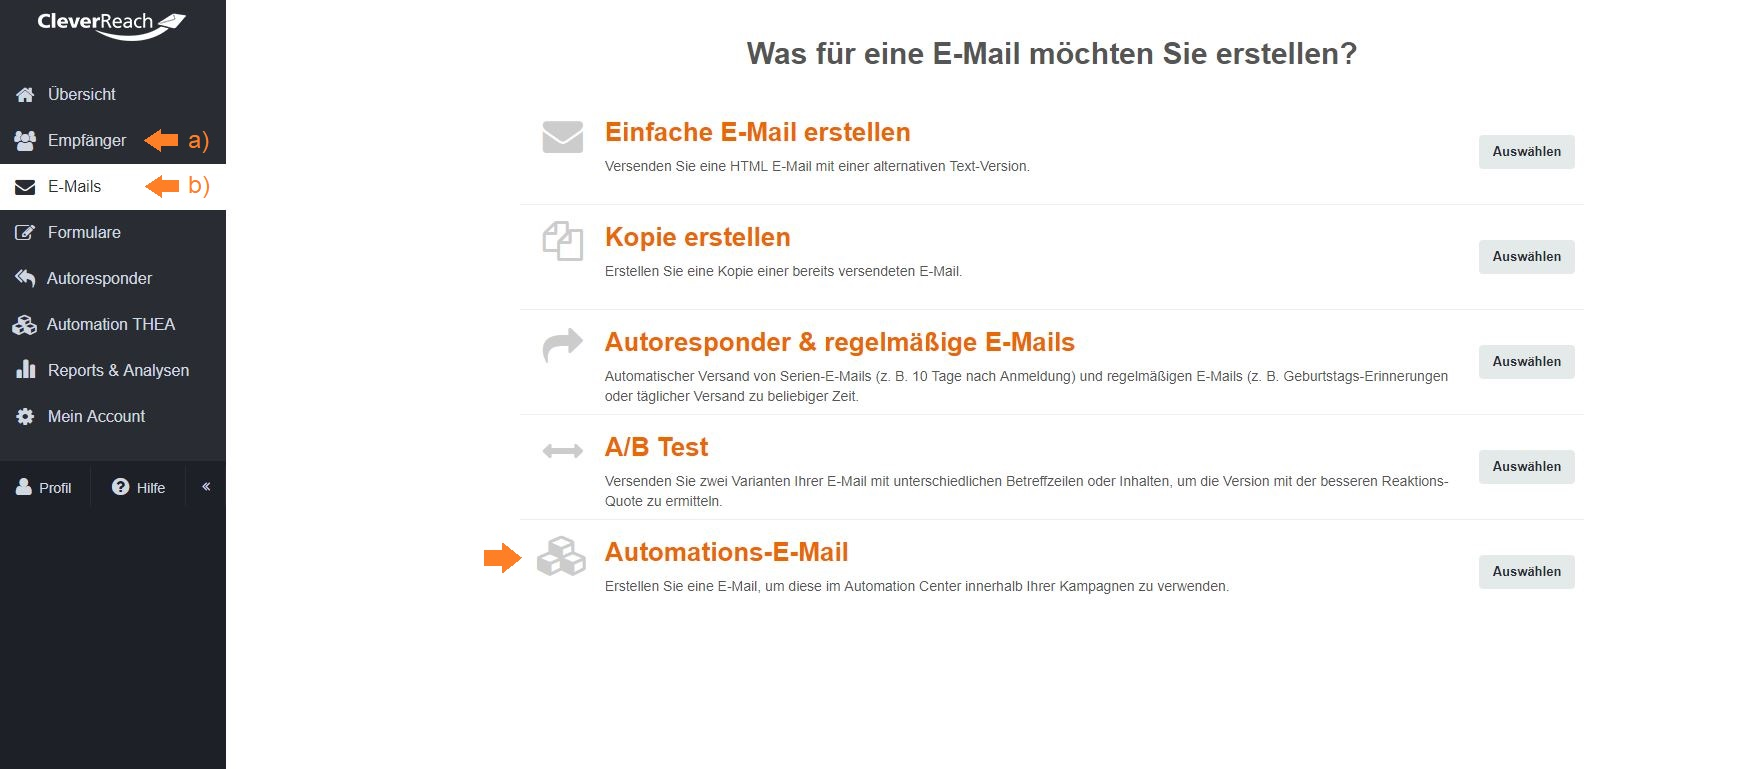 cleverreach_screenshot_autoresponder_follow-ups_thea_automation_e-mail_erstellen